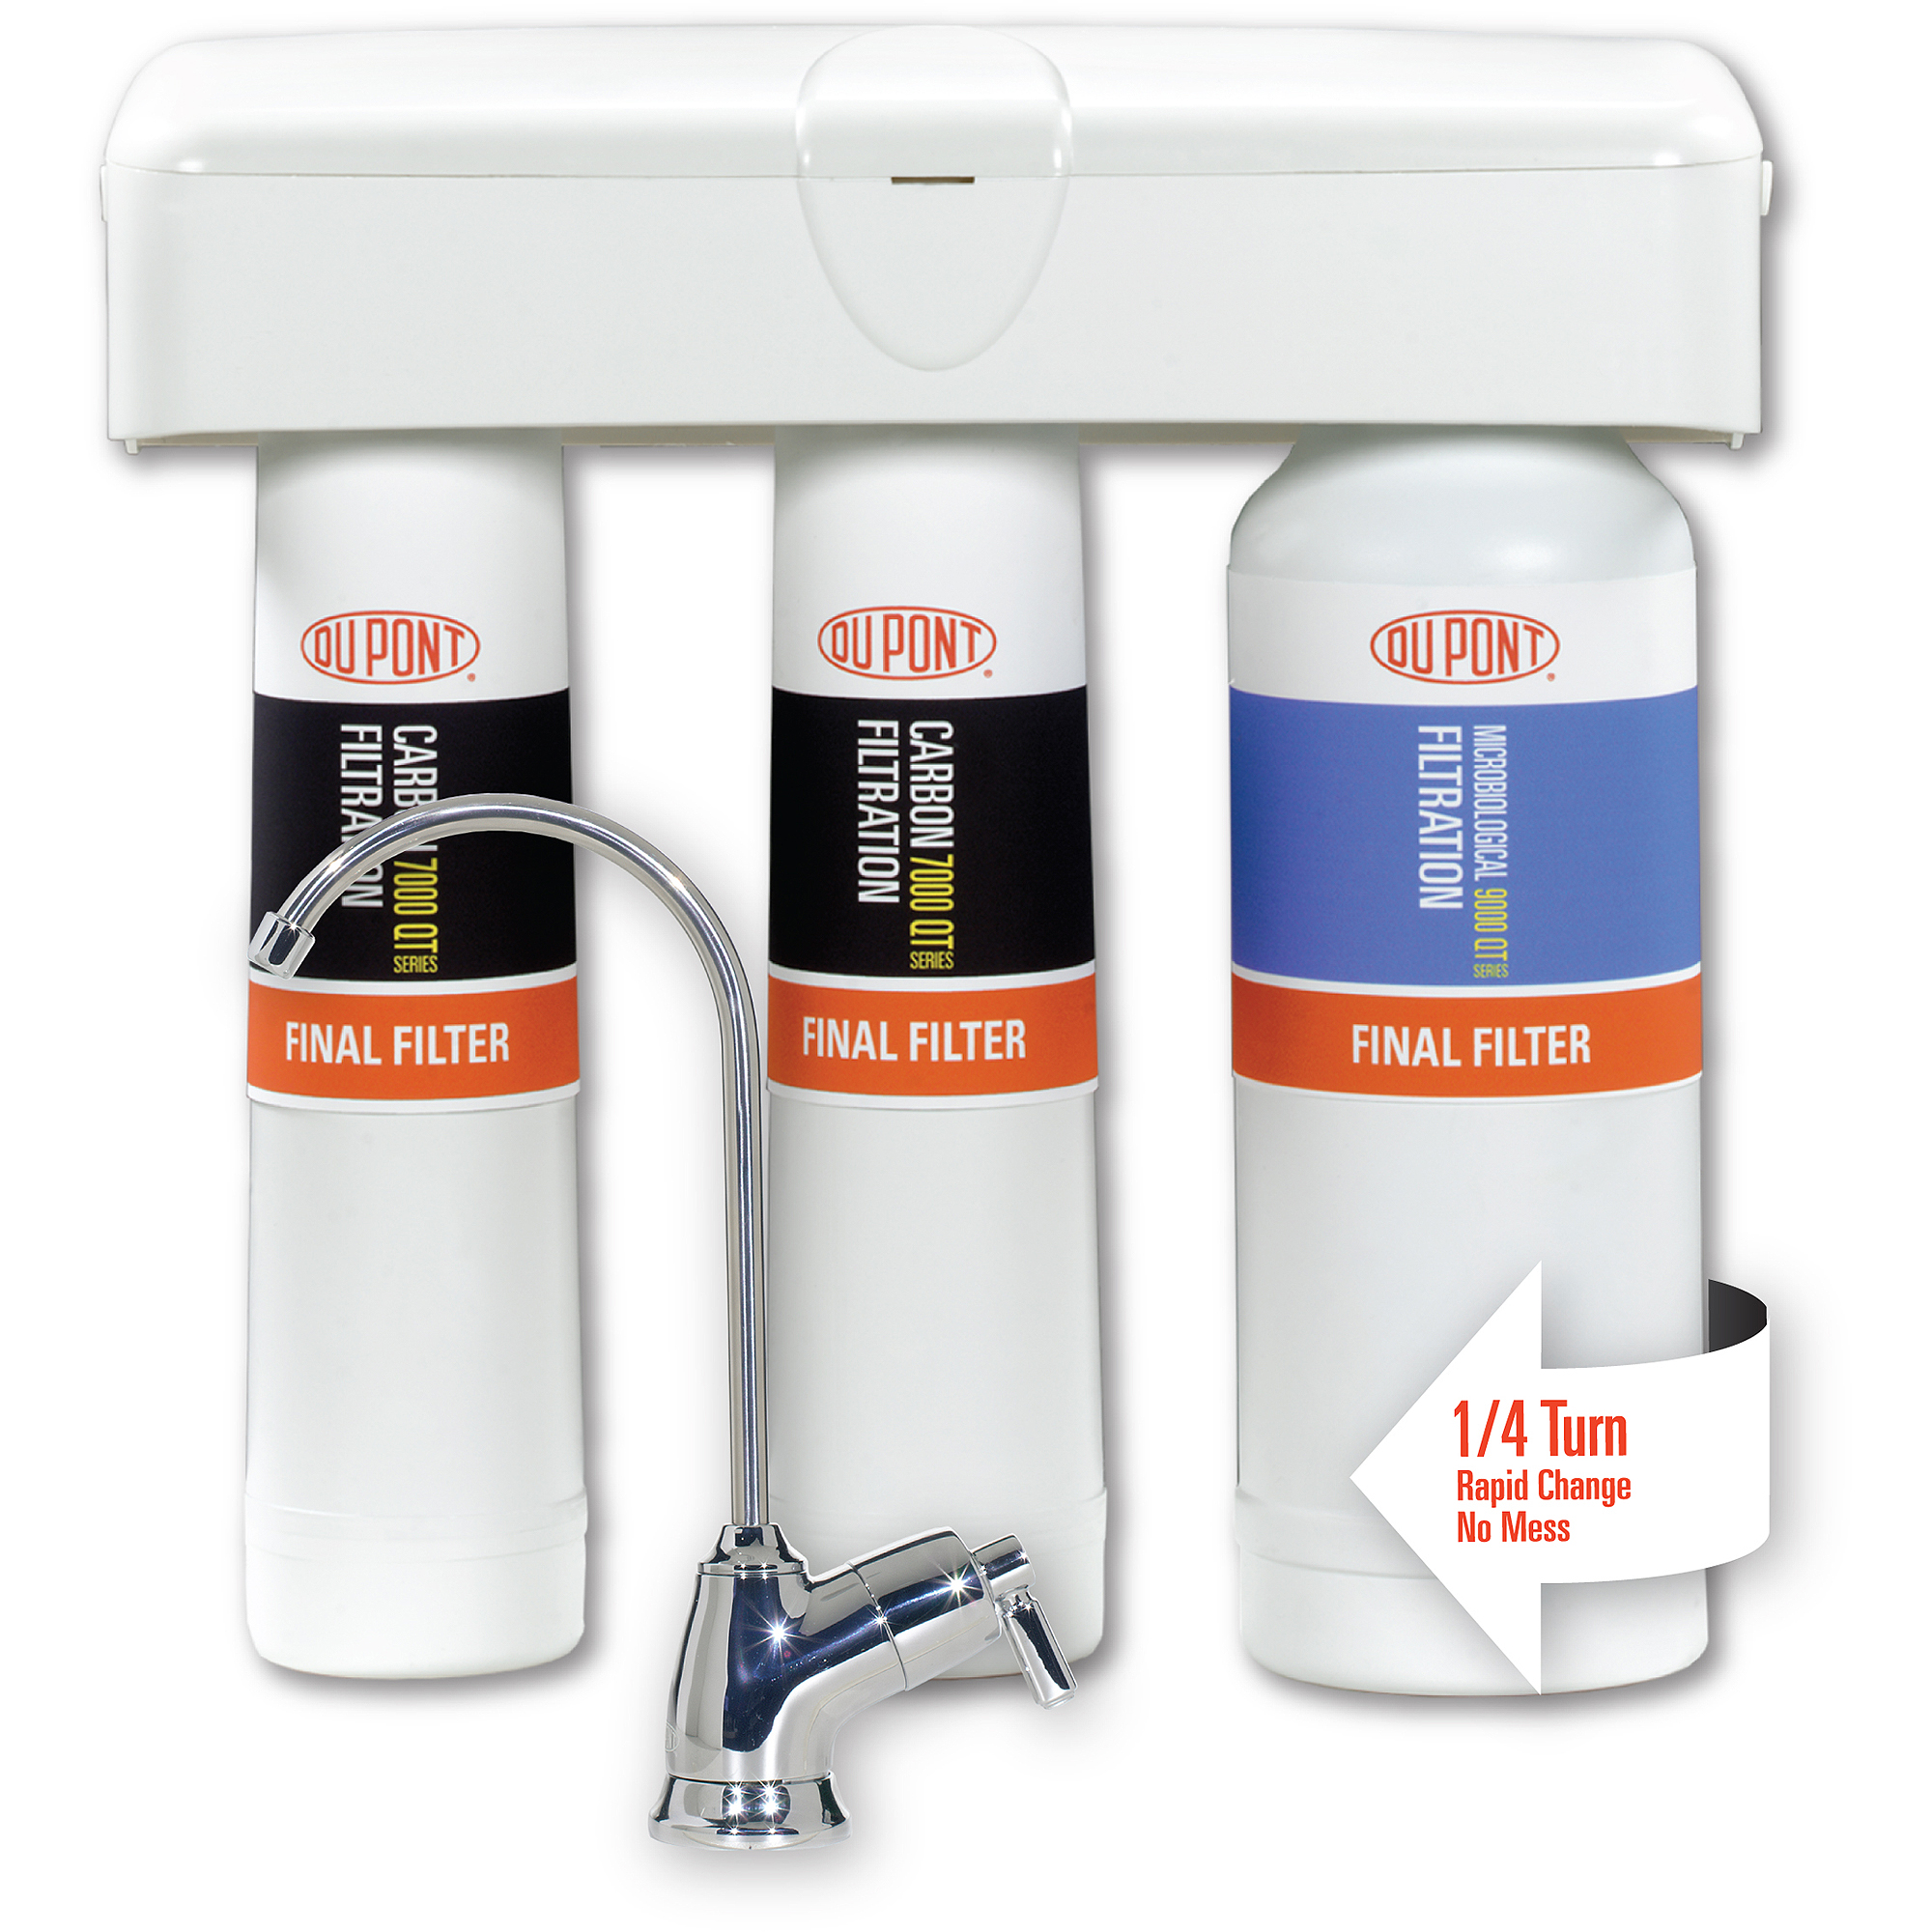 DUPONT WFQT390005 Water Filter System, 1/4 in, 1 gpm